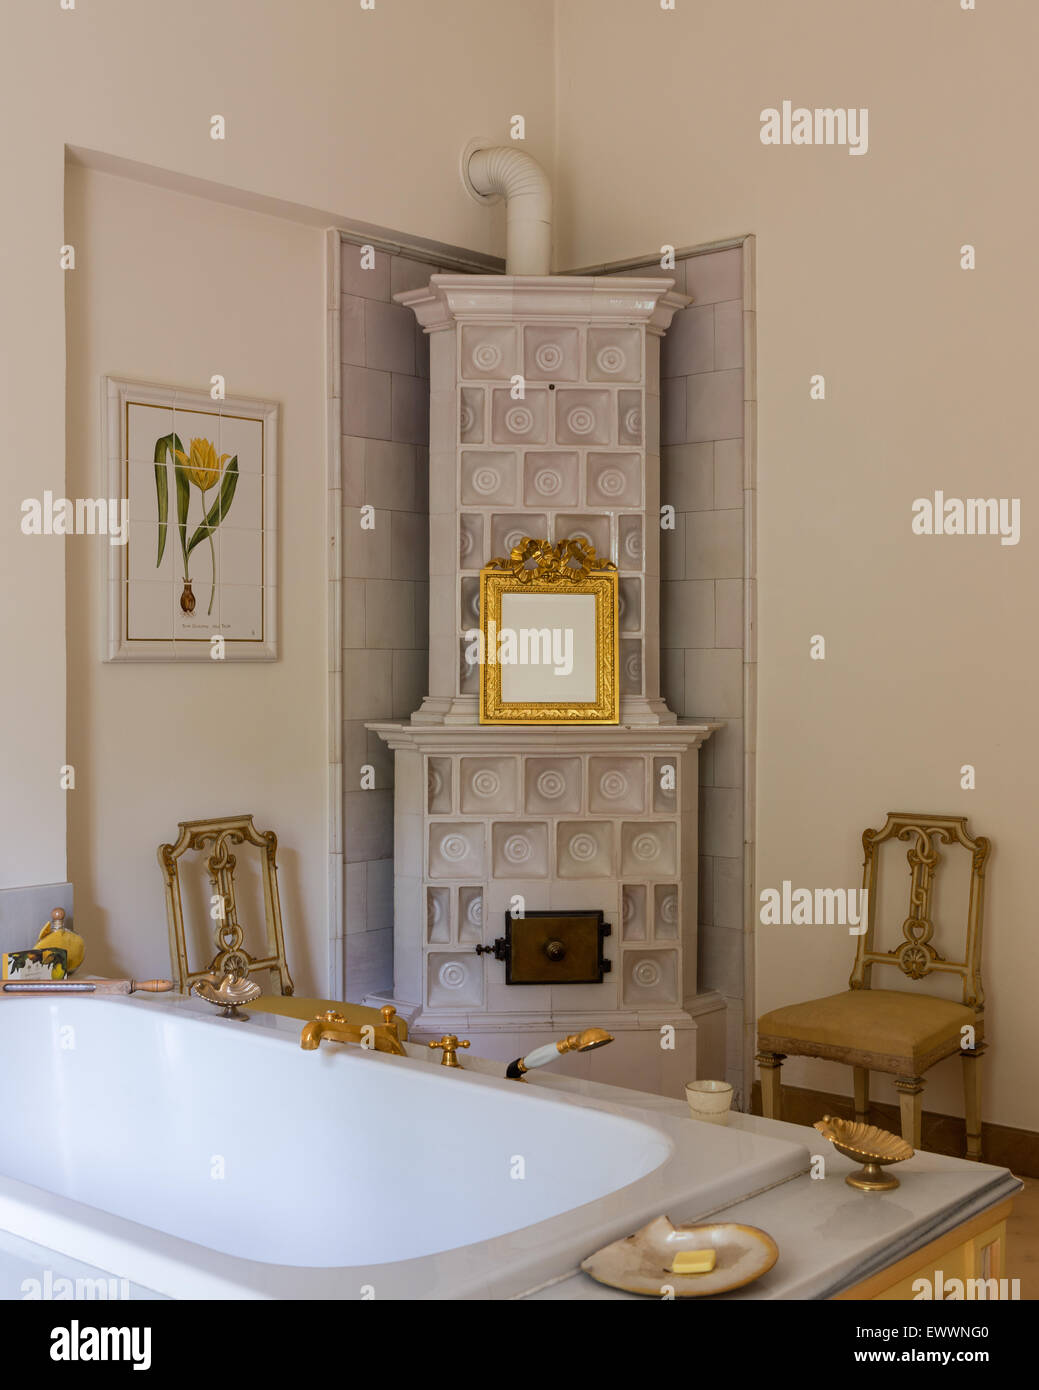 Gilt framed mirror on tiled stove in bathoom with pair of matching antique chairs - Stock Image